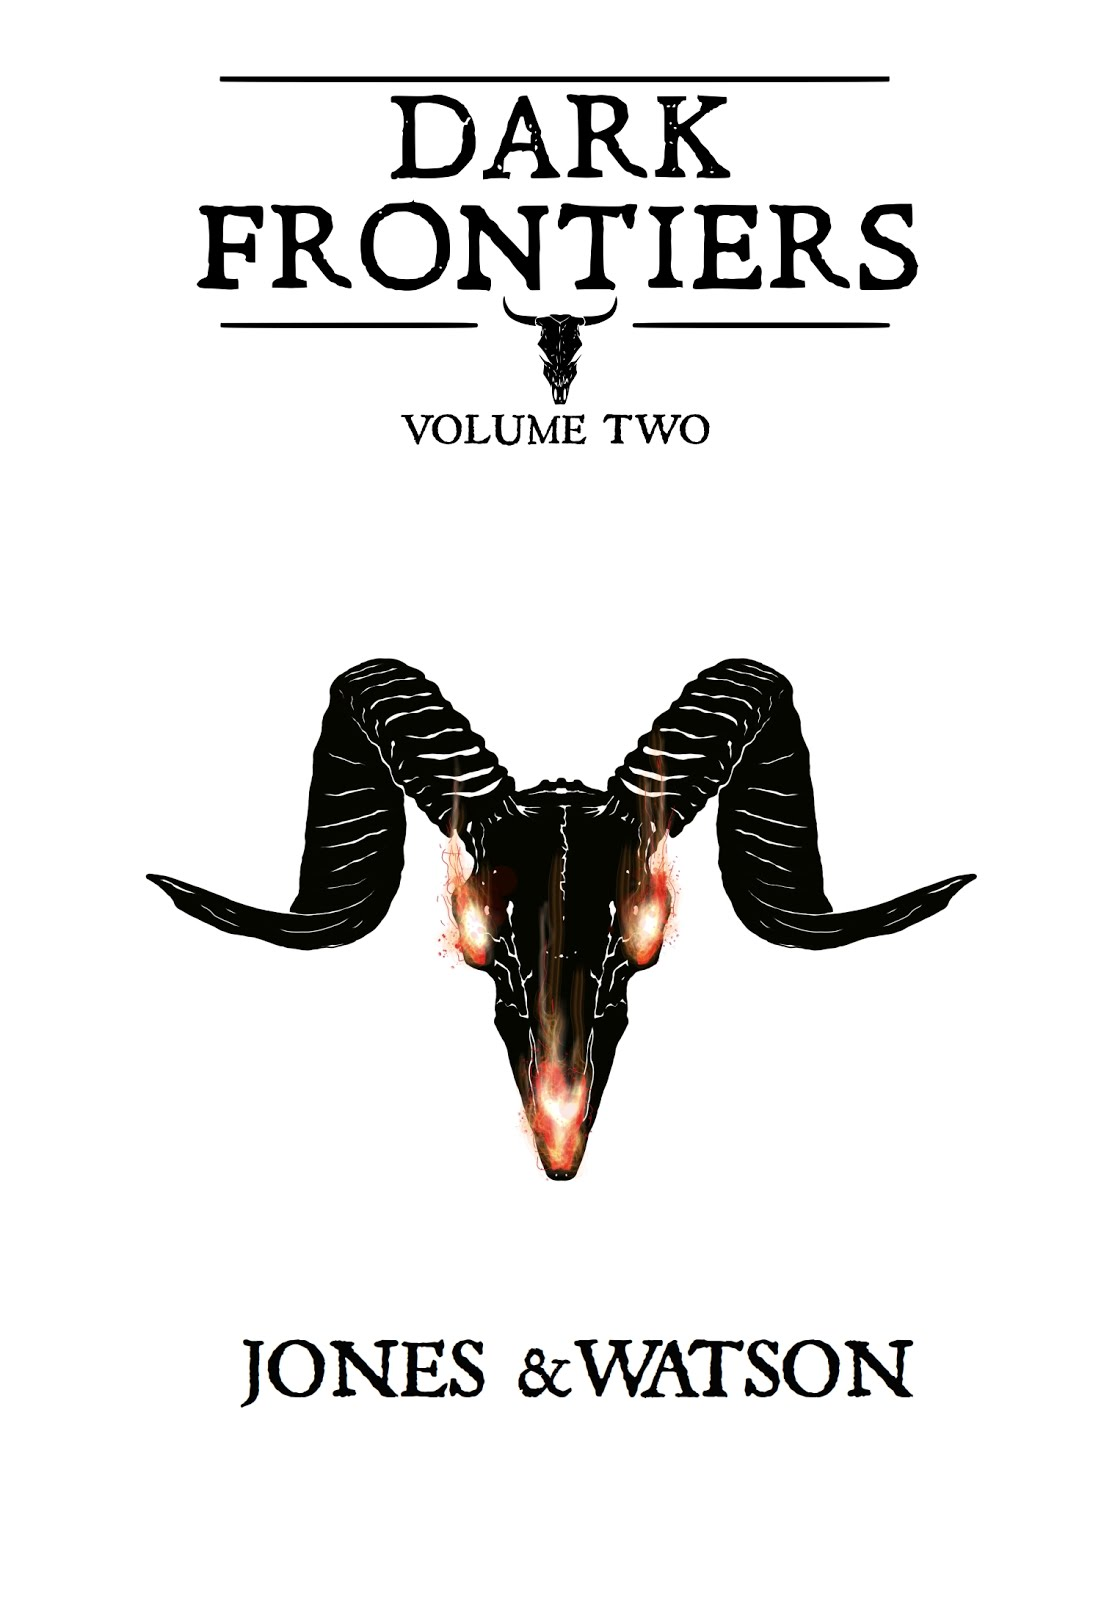 Dark Frontiers Volume Two